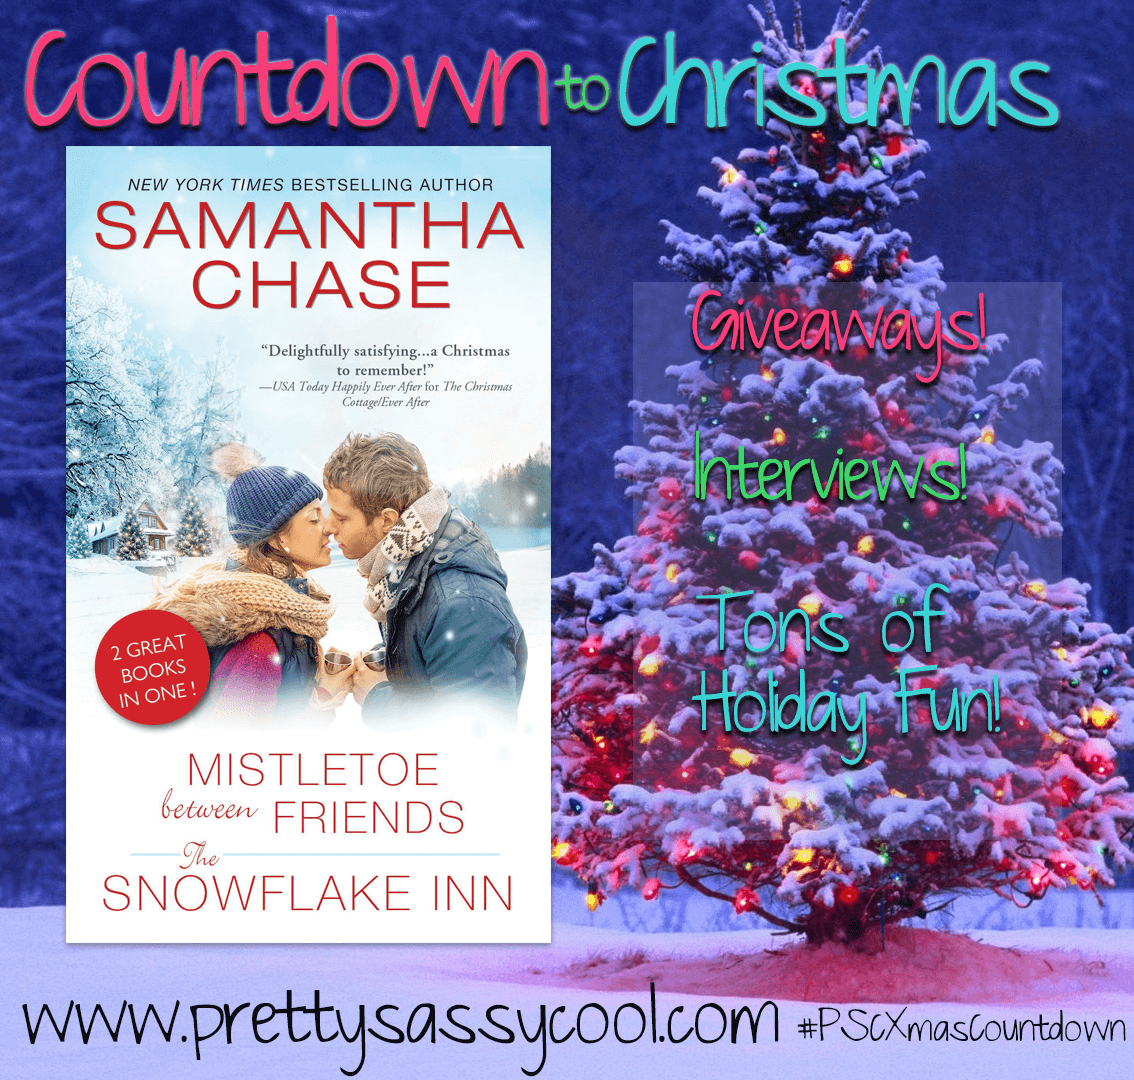 Chase Christmas Eve Hours.Countdown To Christmas With Samantha Chase Author Of